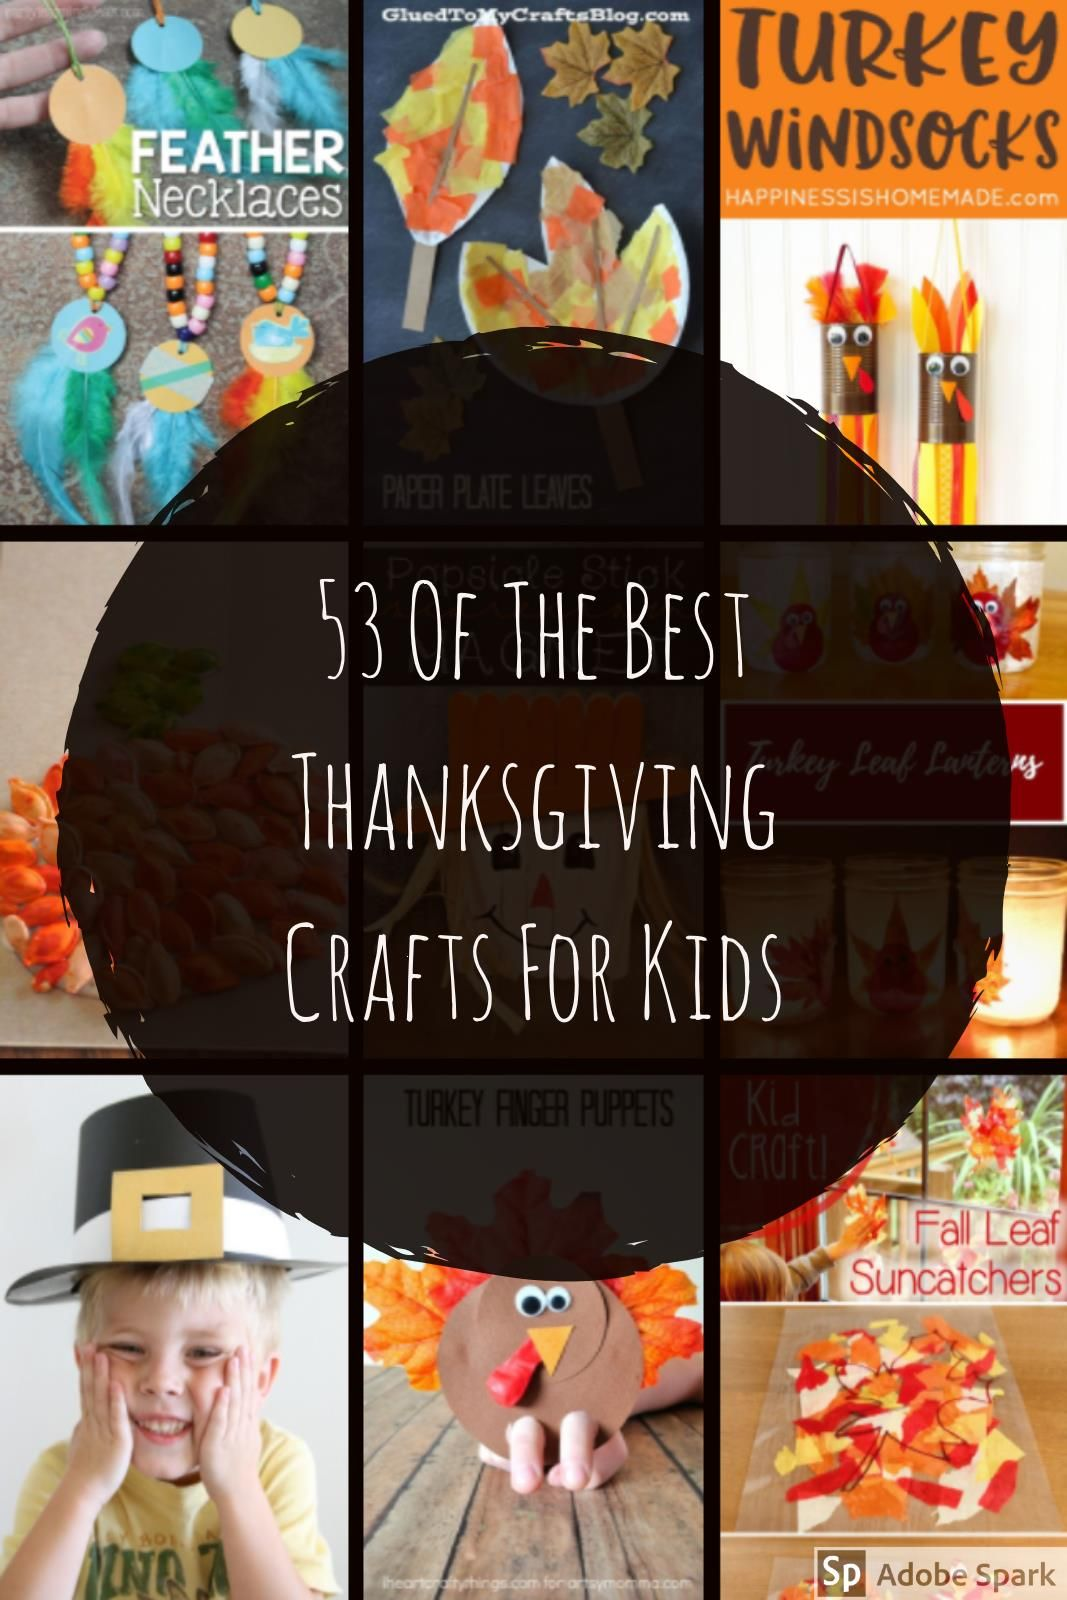 The best Thanksgiving craft ideas on Pinterest all in one